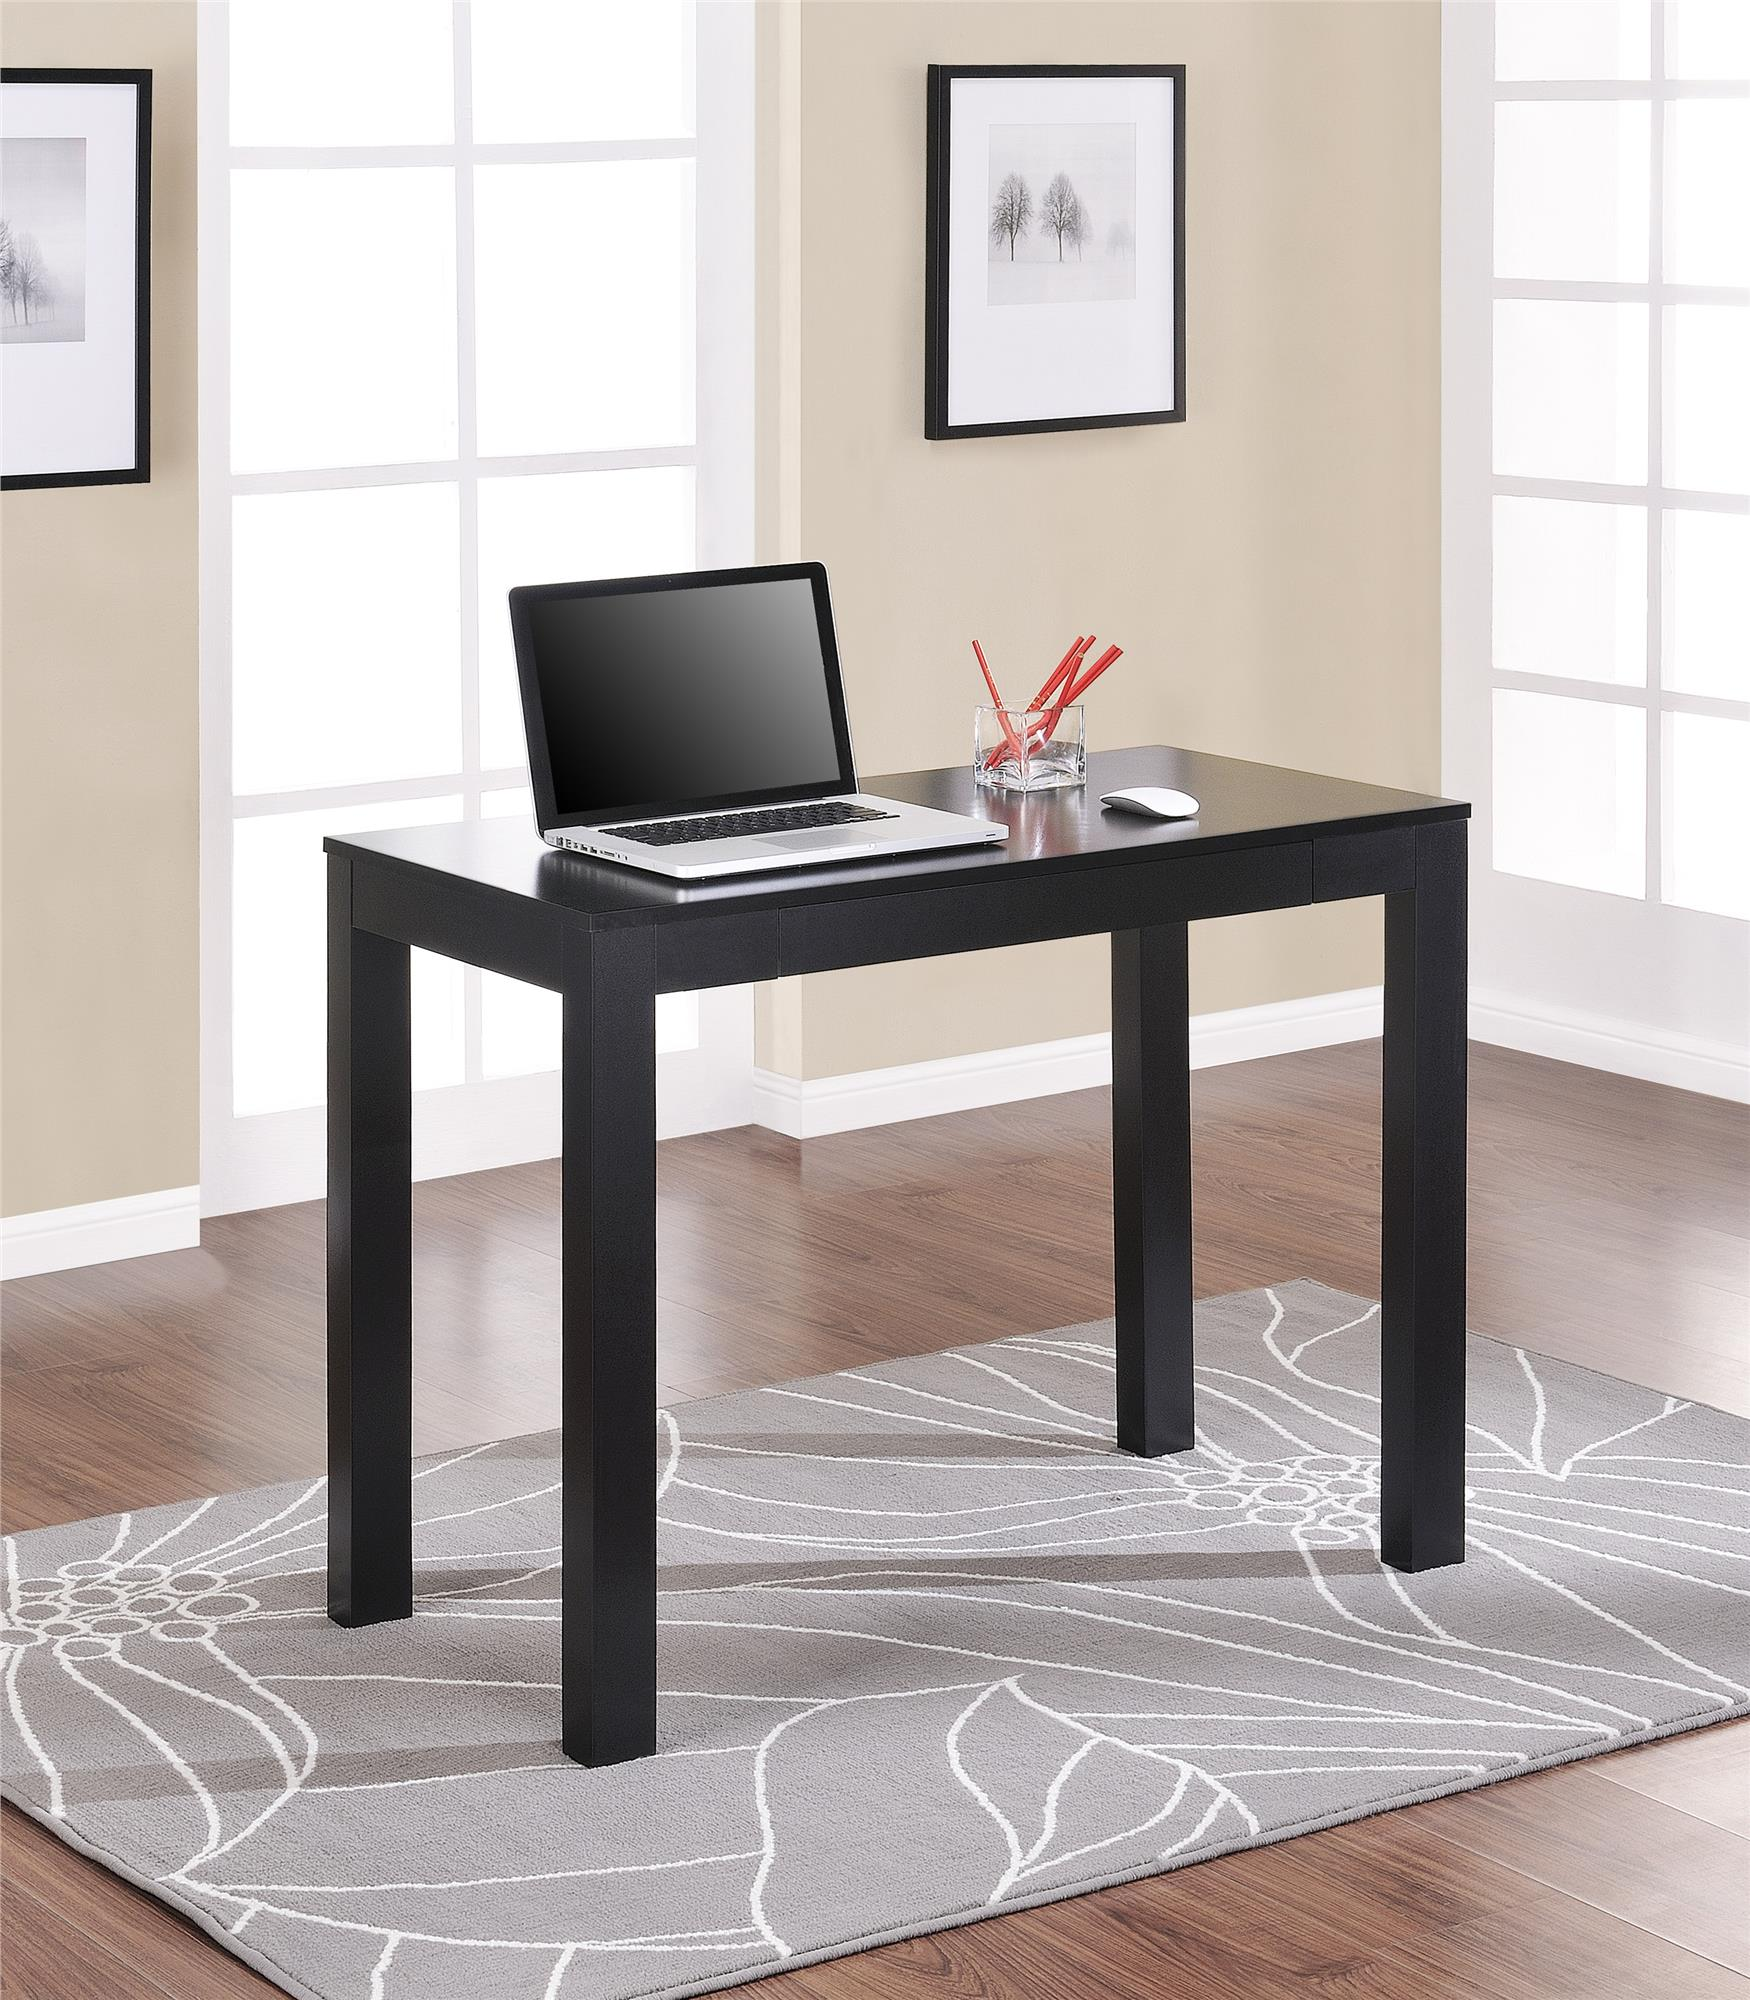 Parsons Desk With Drawer Instructions: Mainstays Parsons Desk With Drawer, Black